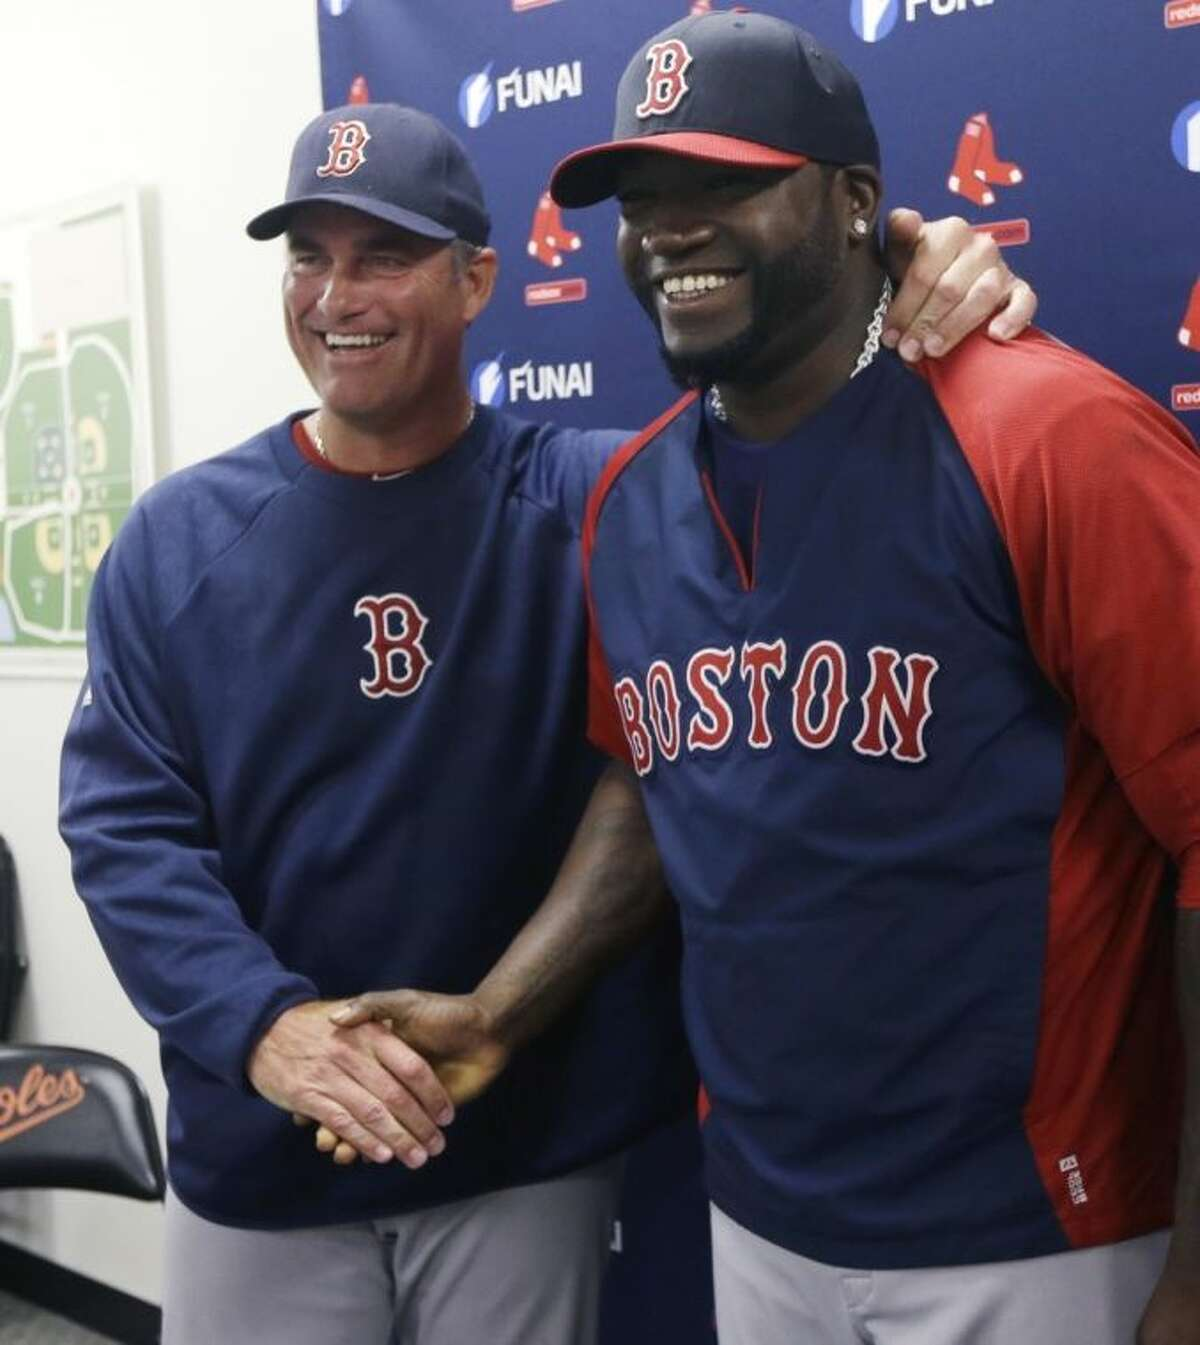 Boston Red Sox designated hitter David Ortiz, right, stands with manager John Farrell after a news conference regarding the agreement reached with the team that all but assures the popular slugger will finish his career in Boston, Monday, March 24, 2014 in Sarasota, Fla. Ortiz and the Red Sox agreed to a 2015 contract Sunday with options for the following two years. (AP Photo/Carlos Osorio)